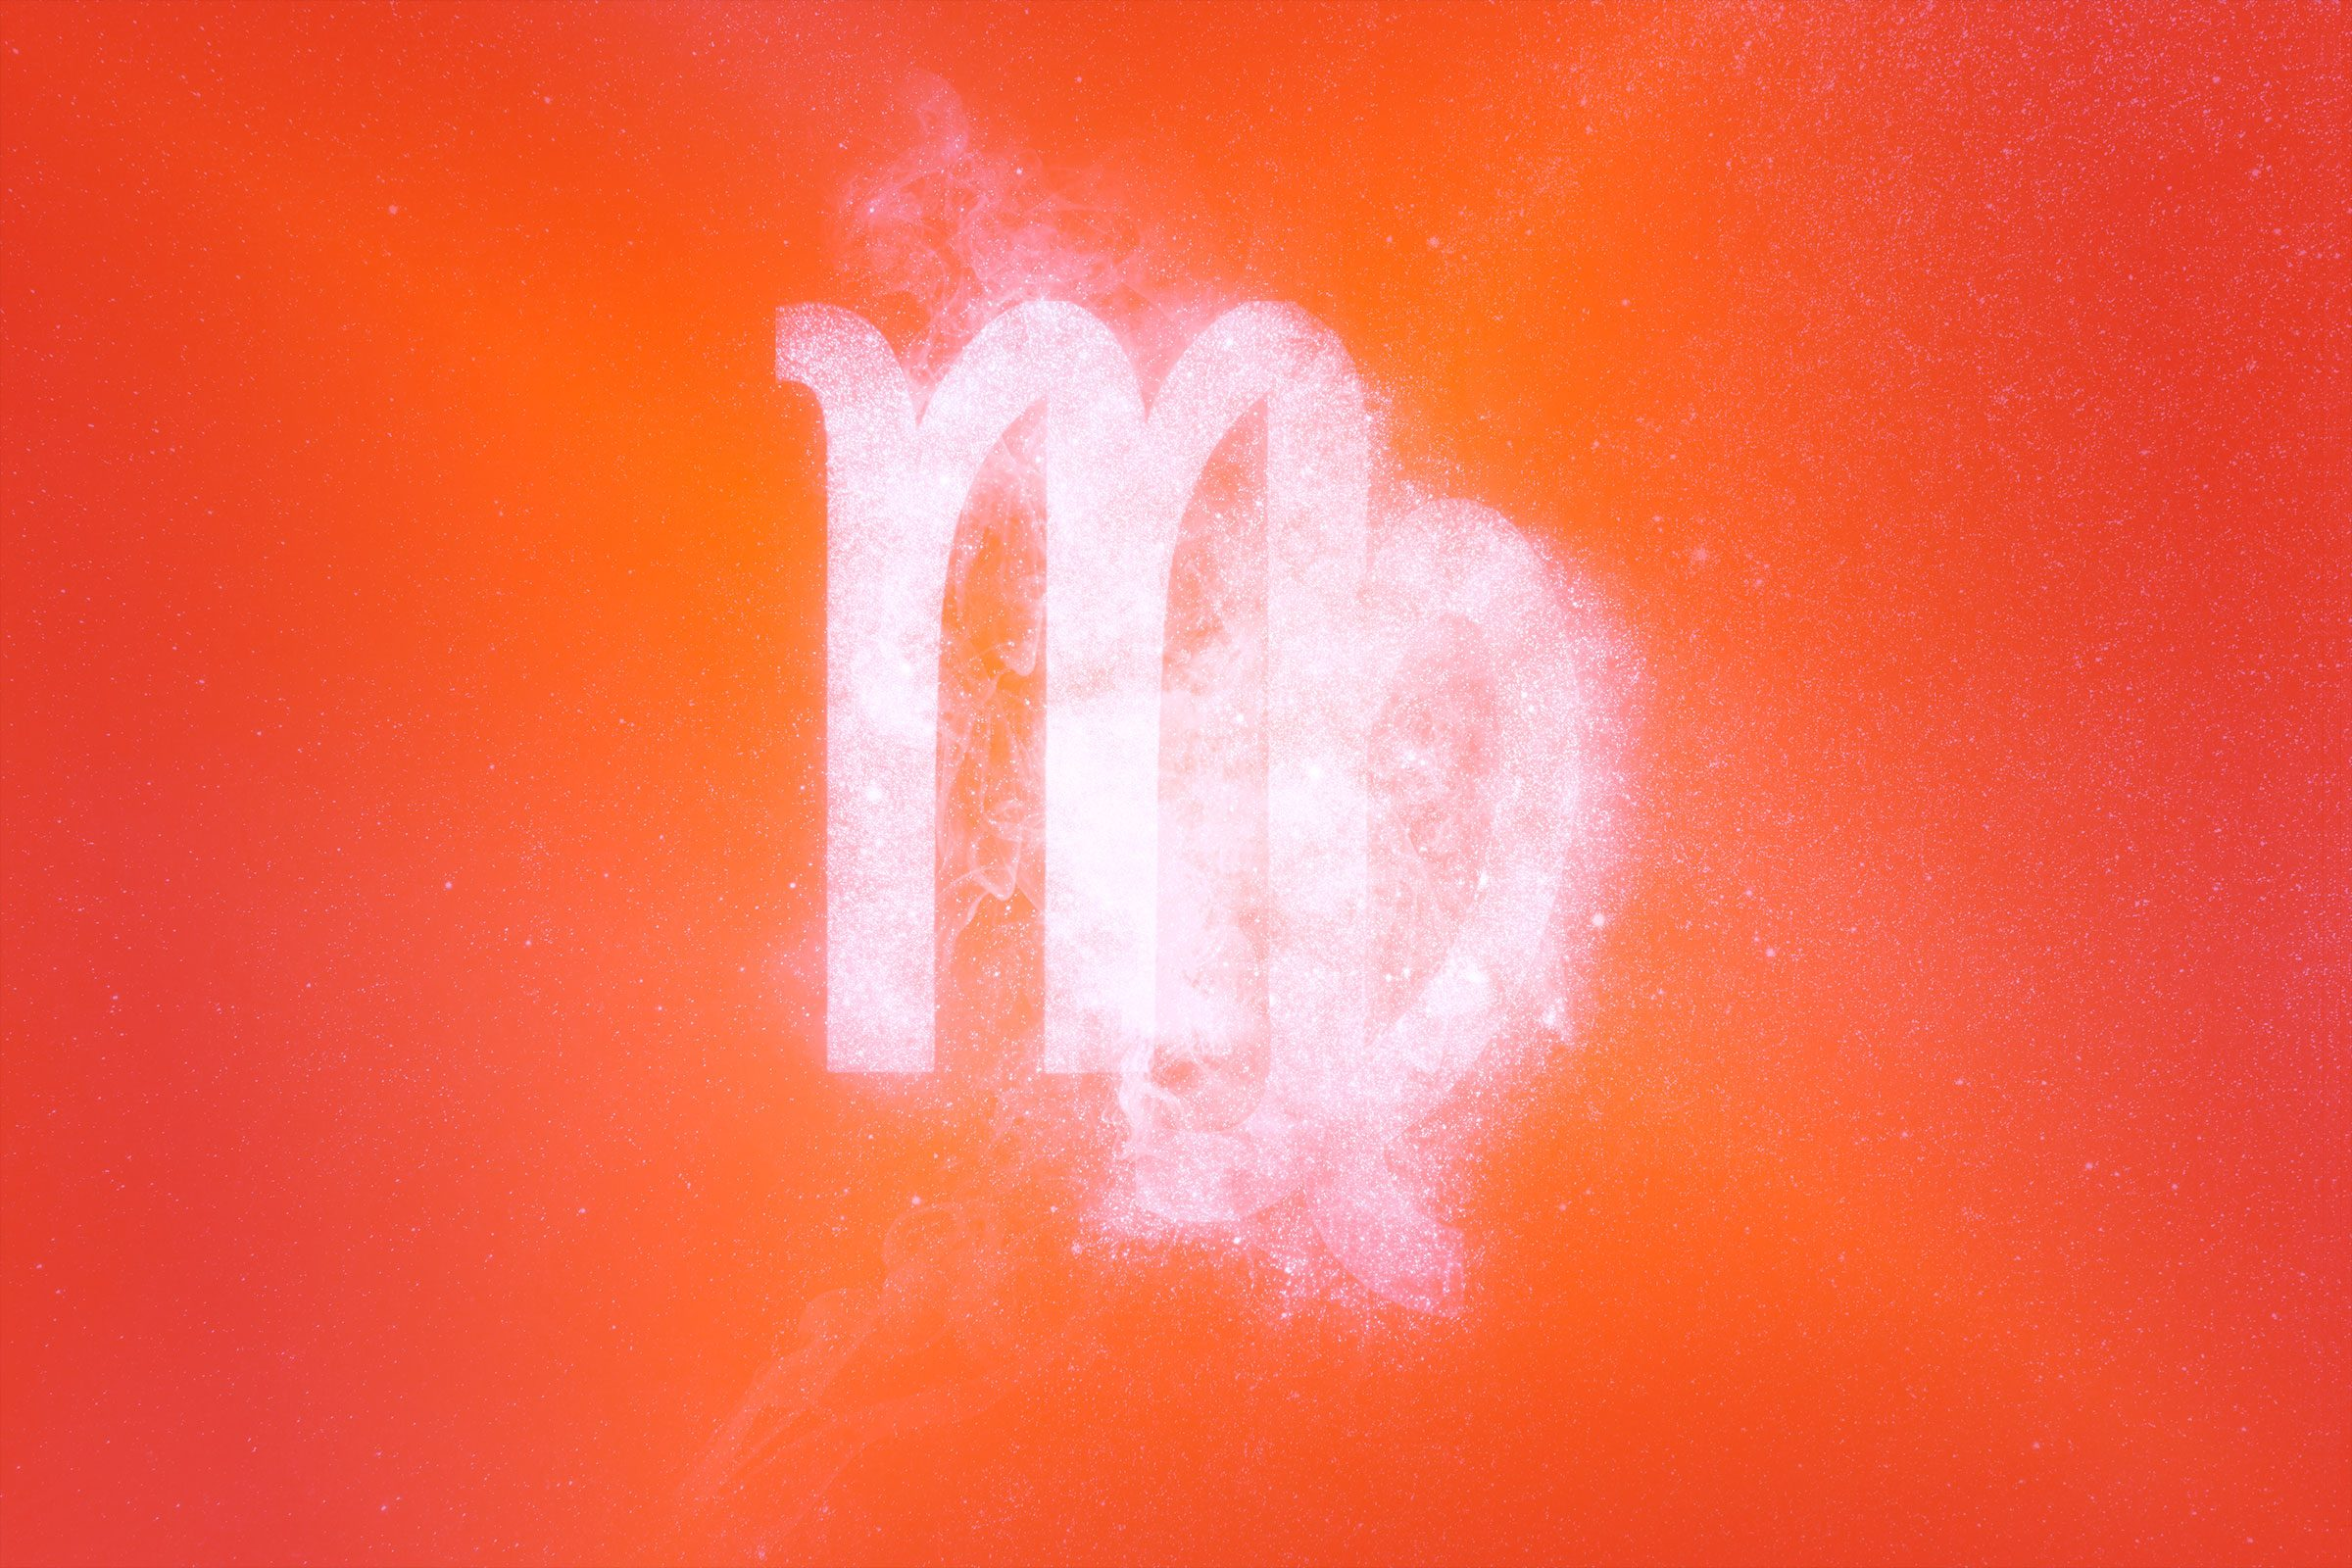 virgo symbol with red-orange gradient overlay